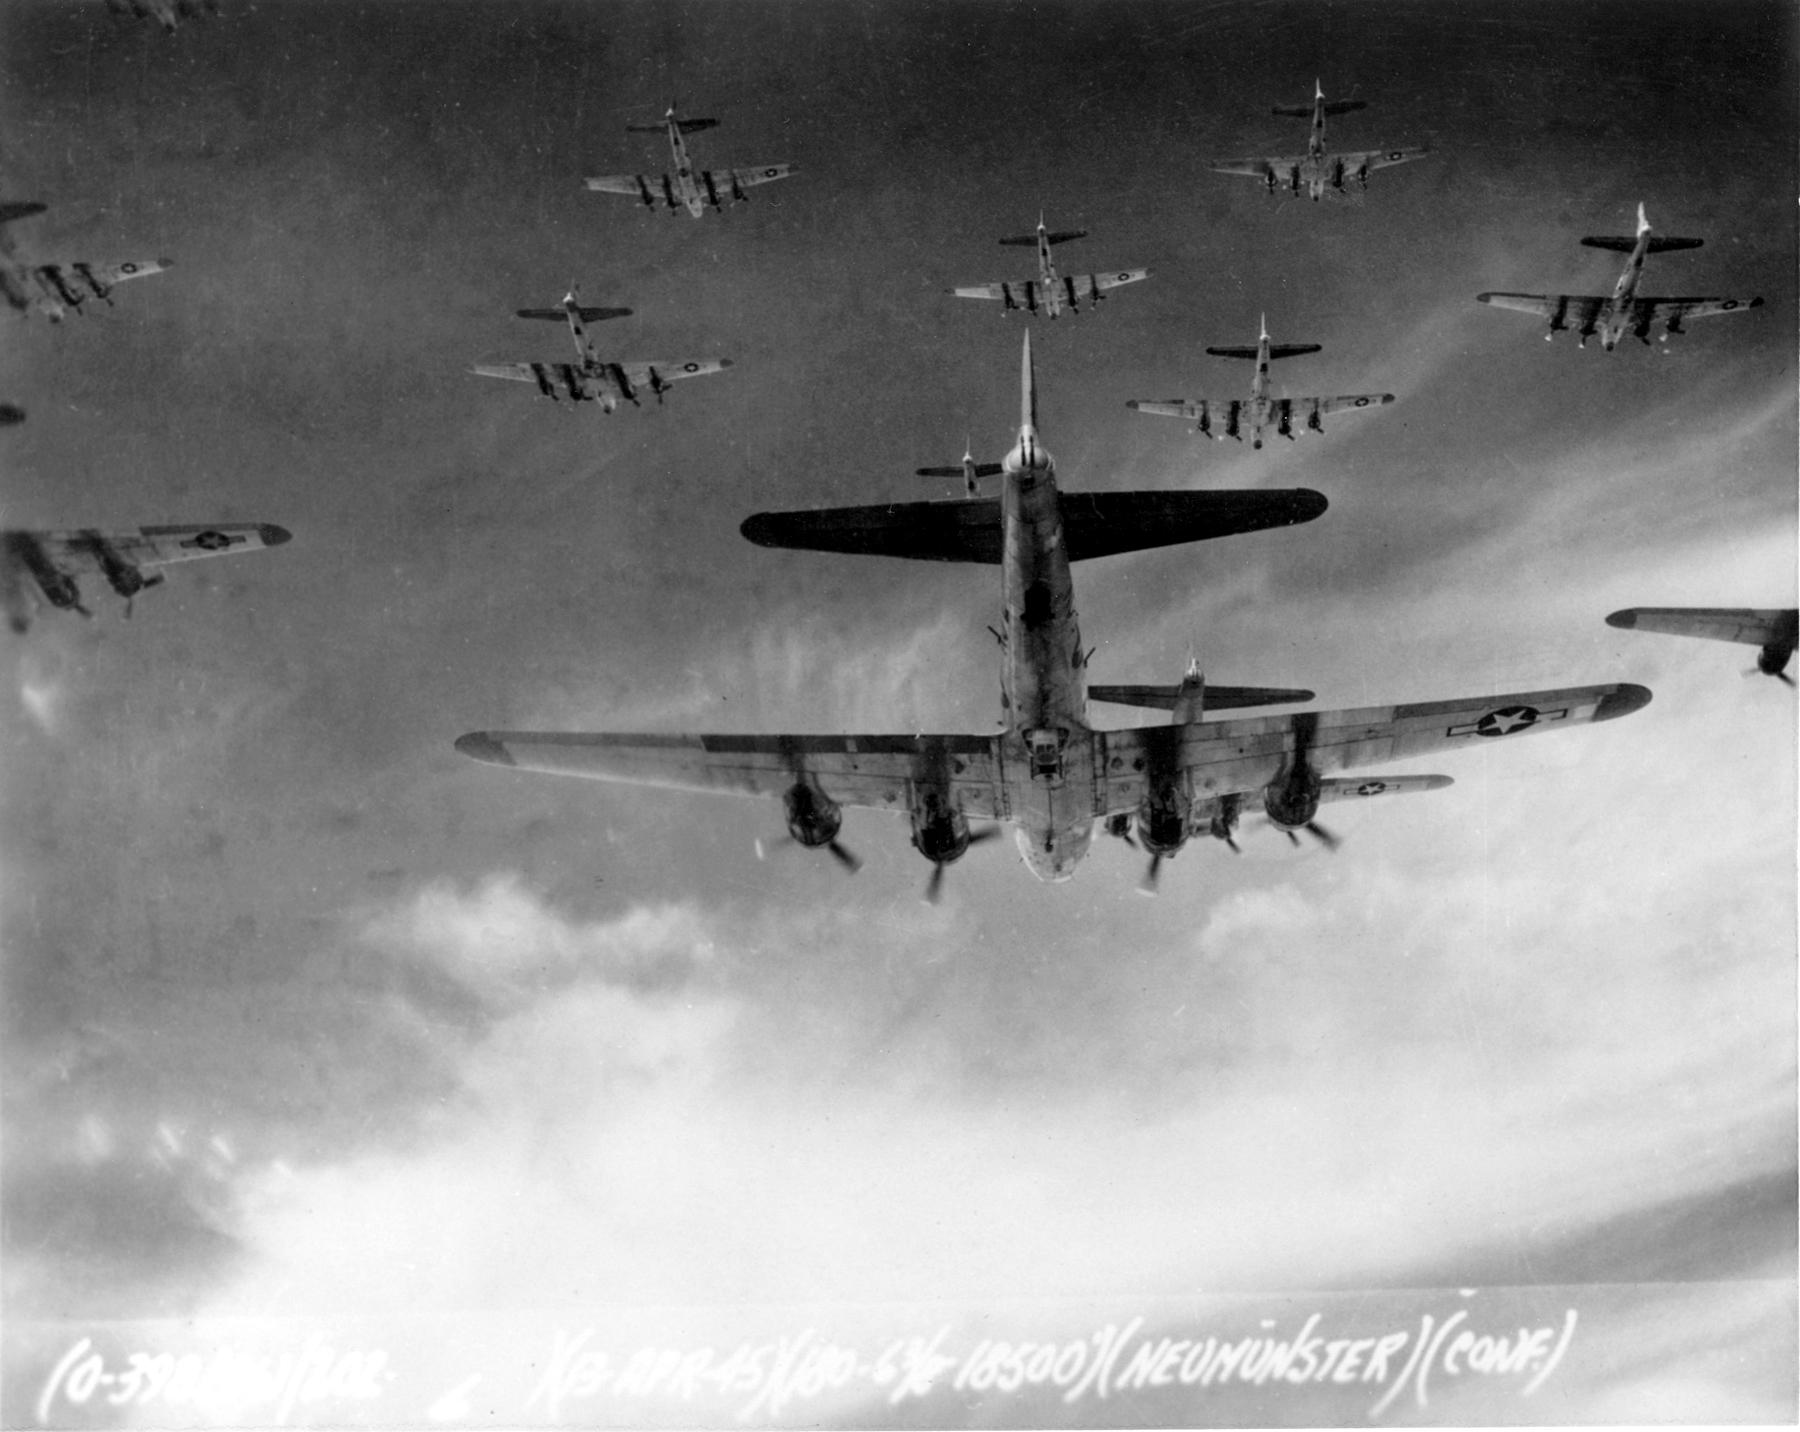 B-17 Flying Fortress 398th Bombardment Group bombing mission